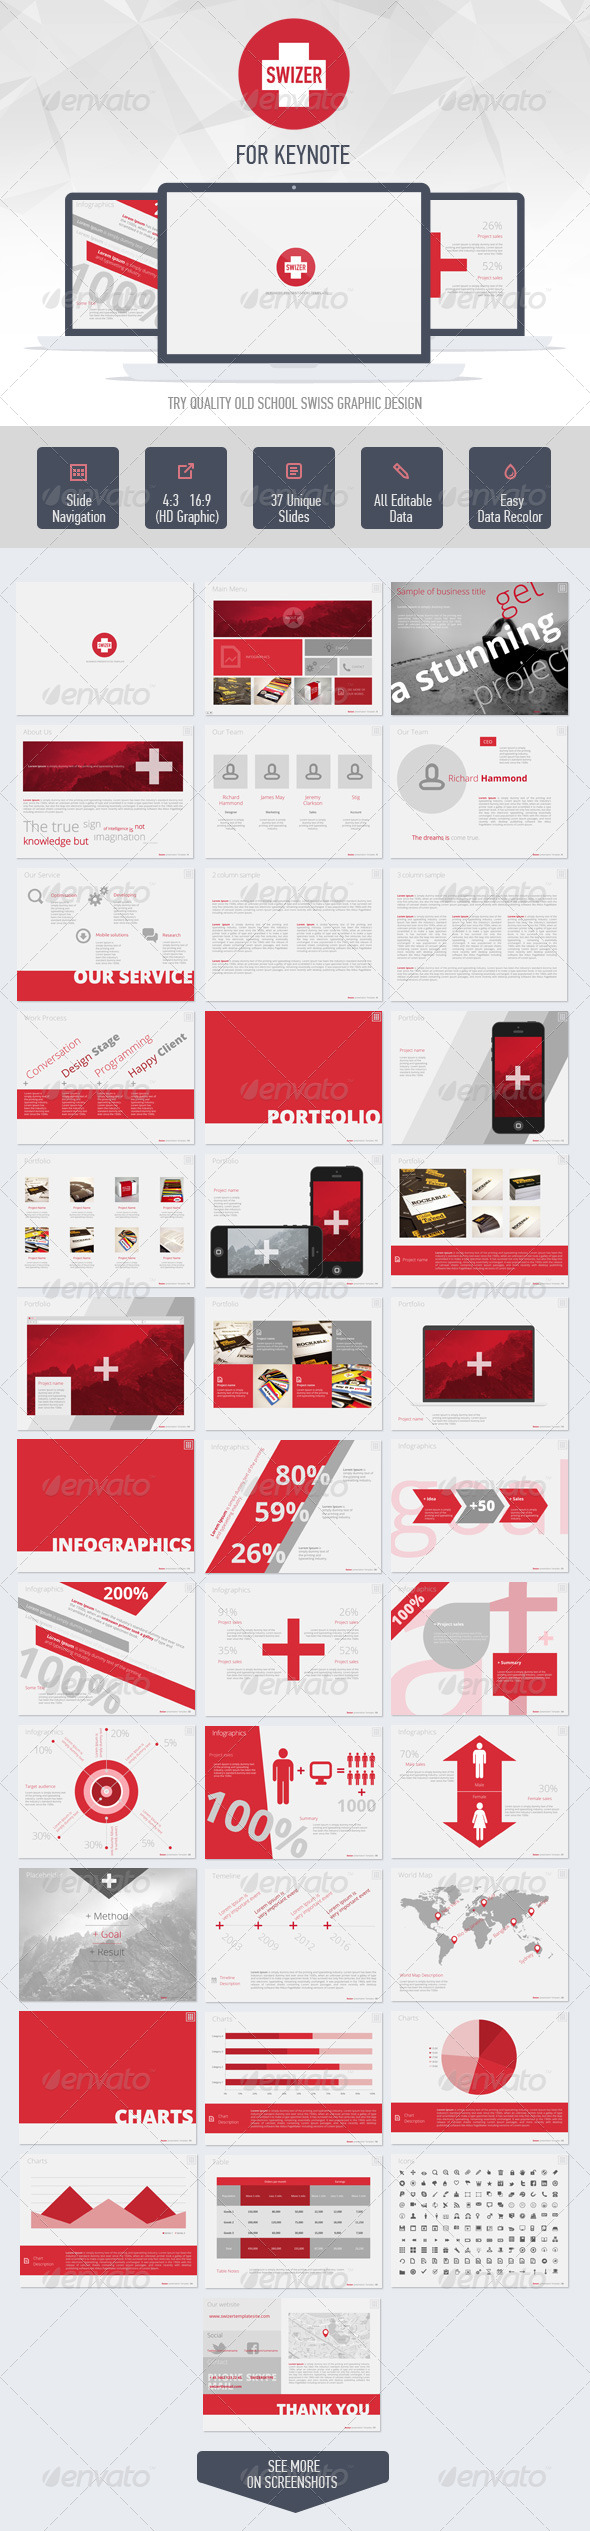 GraphicRiver Swizer Keynote Presentation Template 6586047